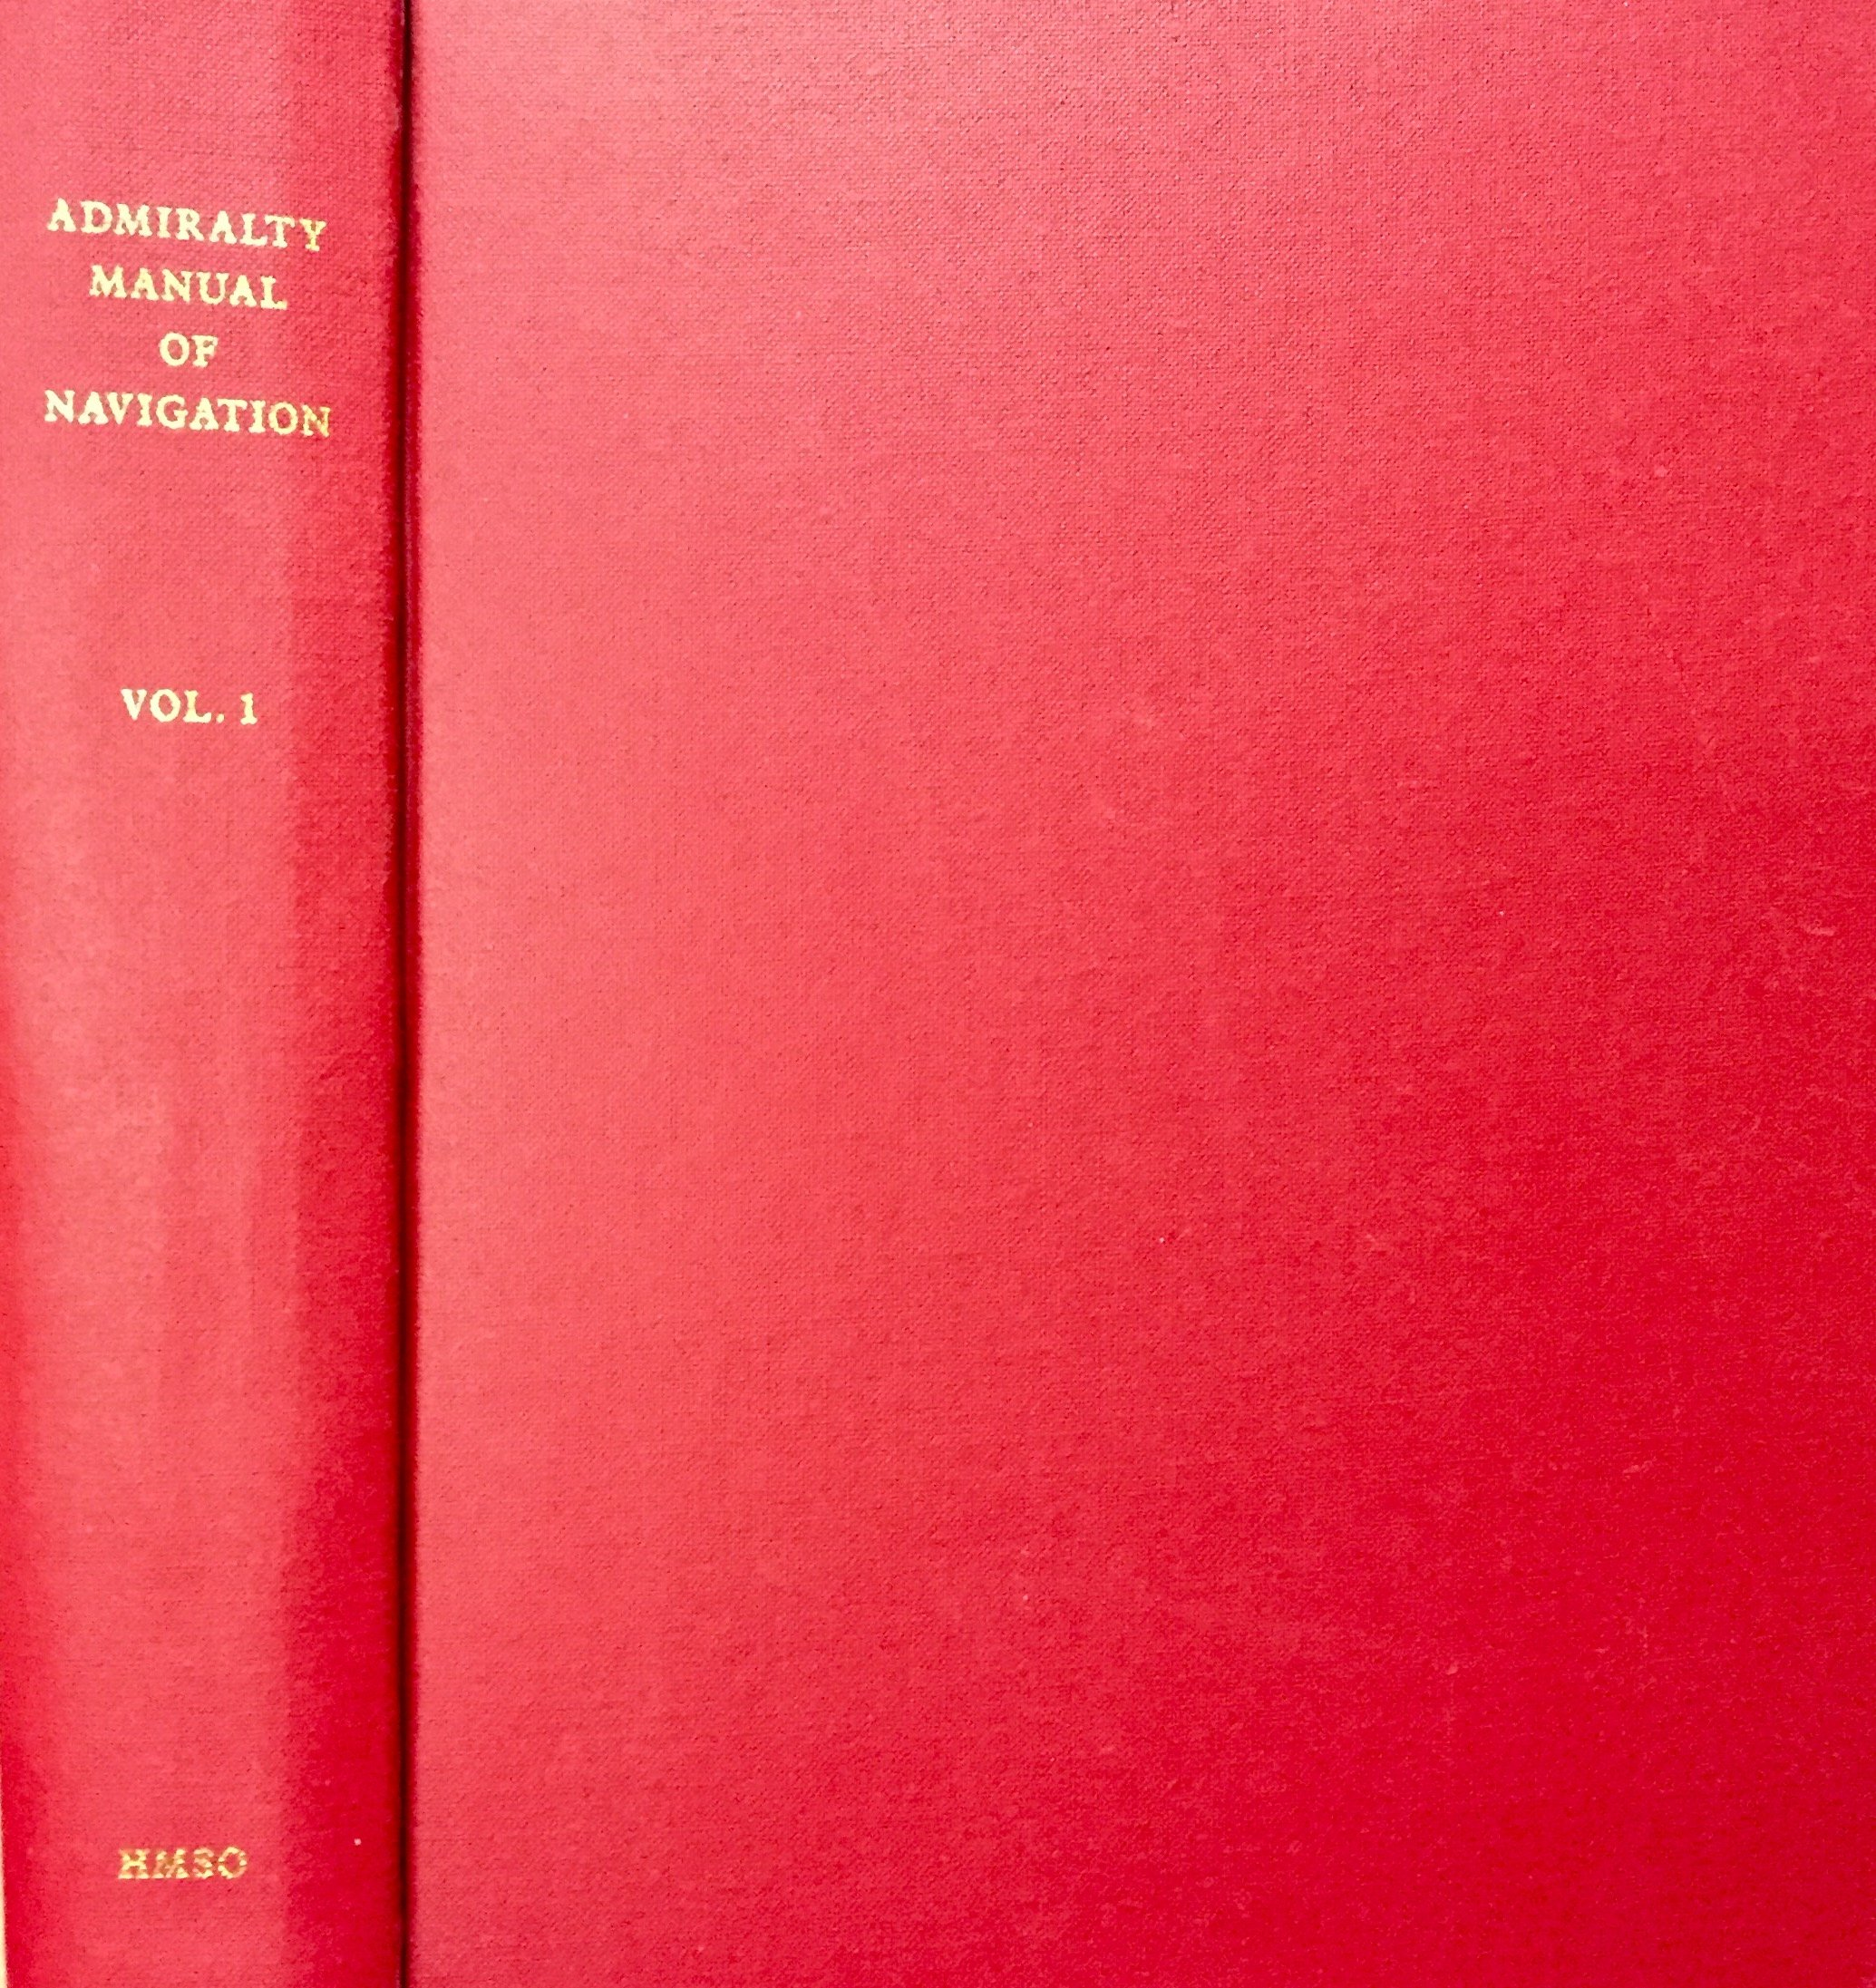 Admirality Manual of Navigation: Vol.1: Br 45(1): Br 45(1): Great Britain:  9780117714687: Amazon.com: Books